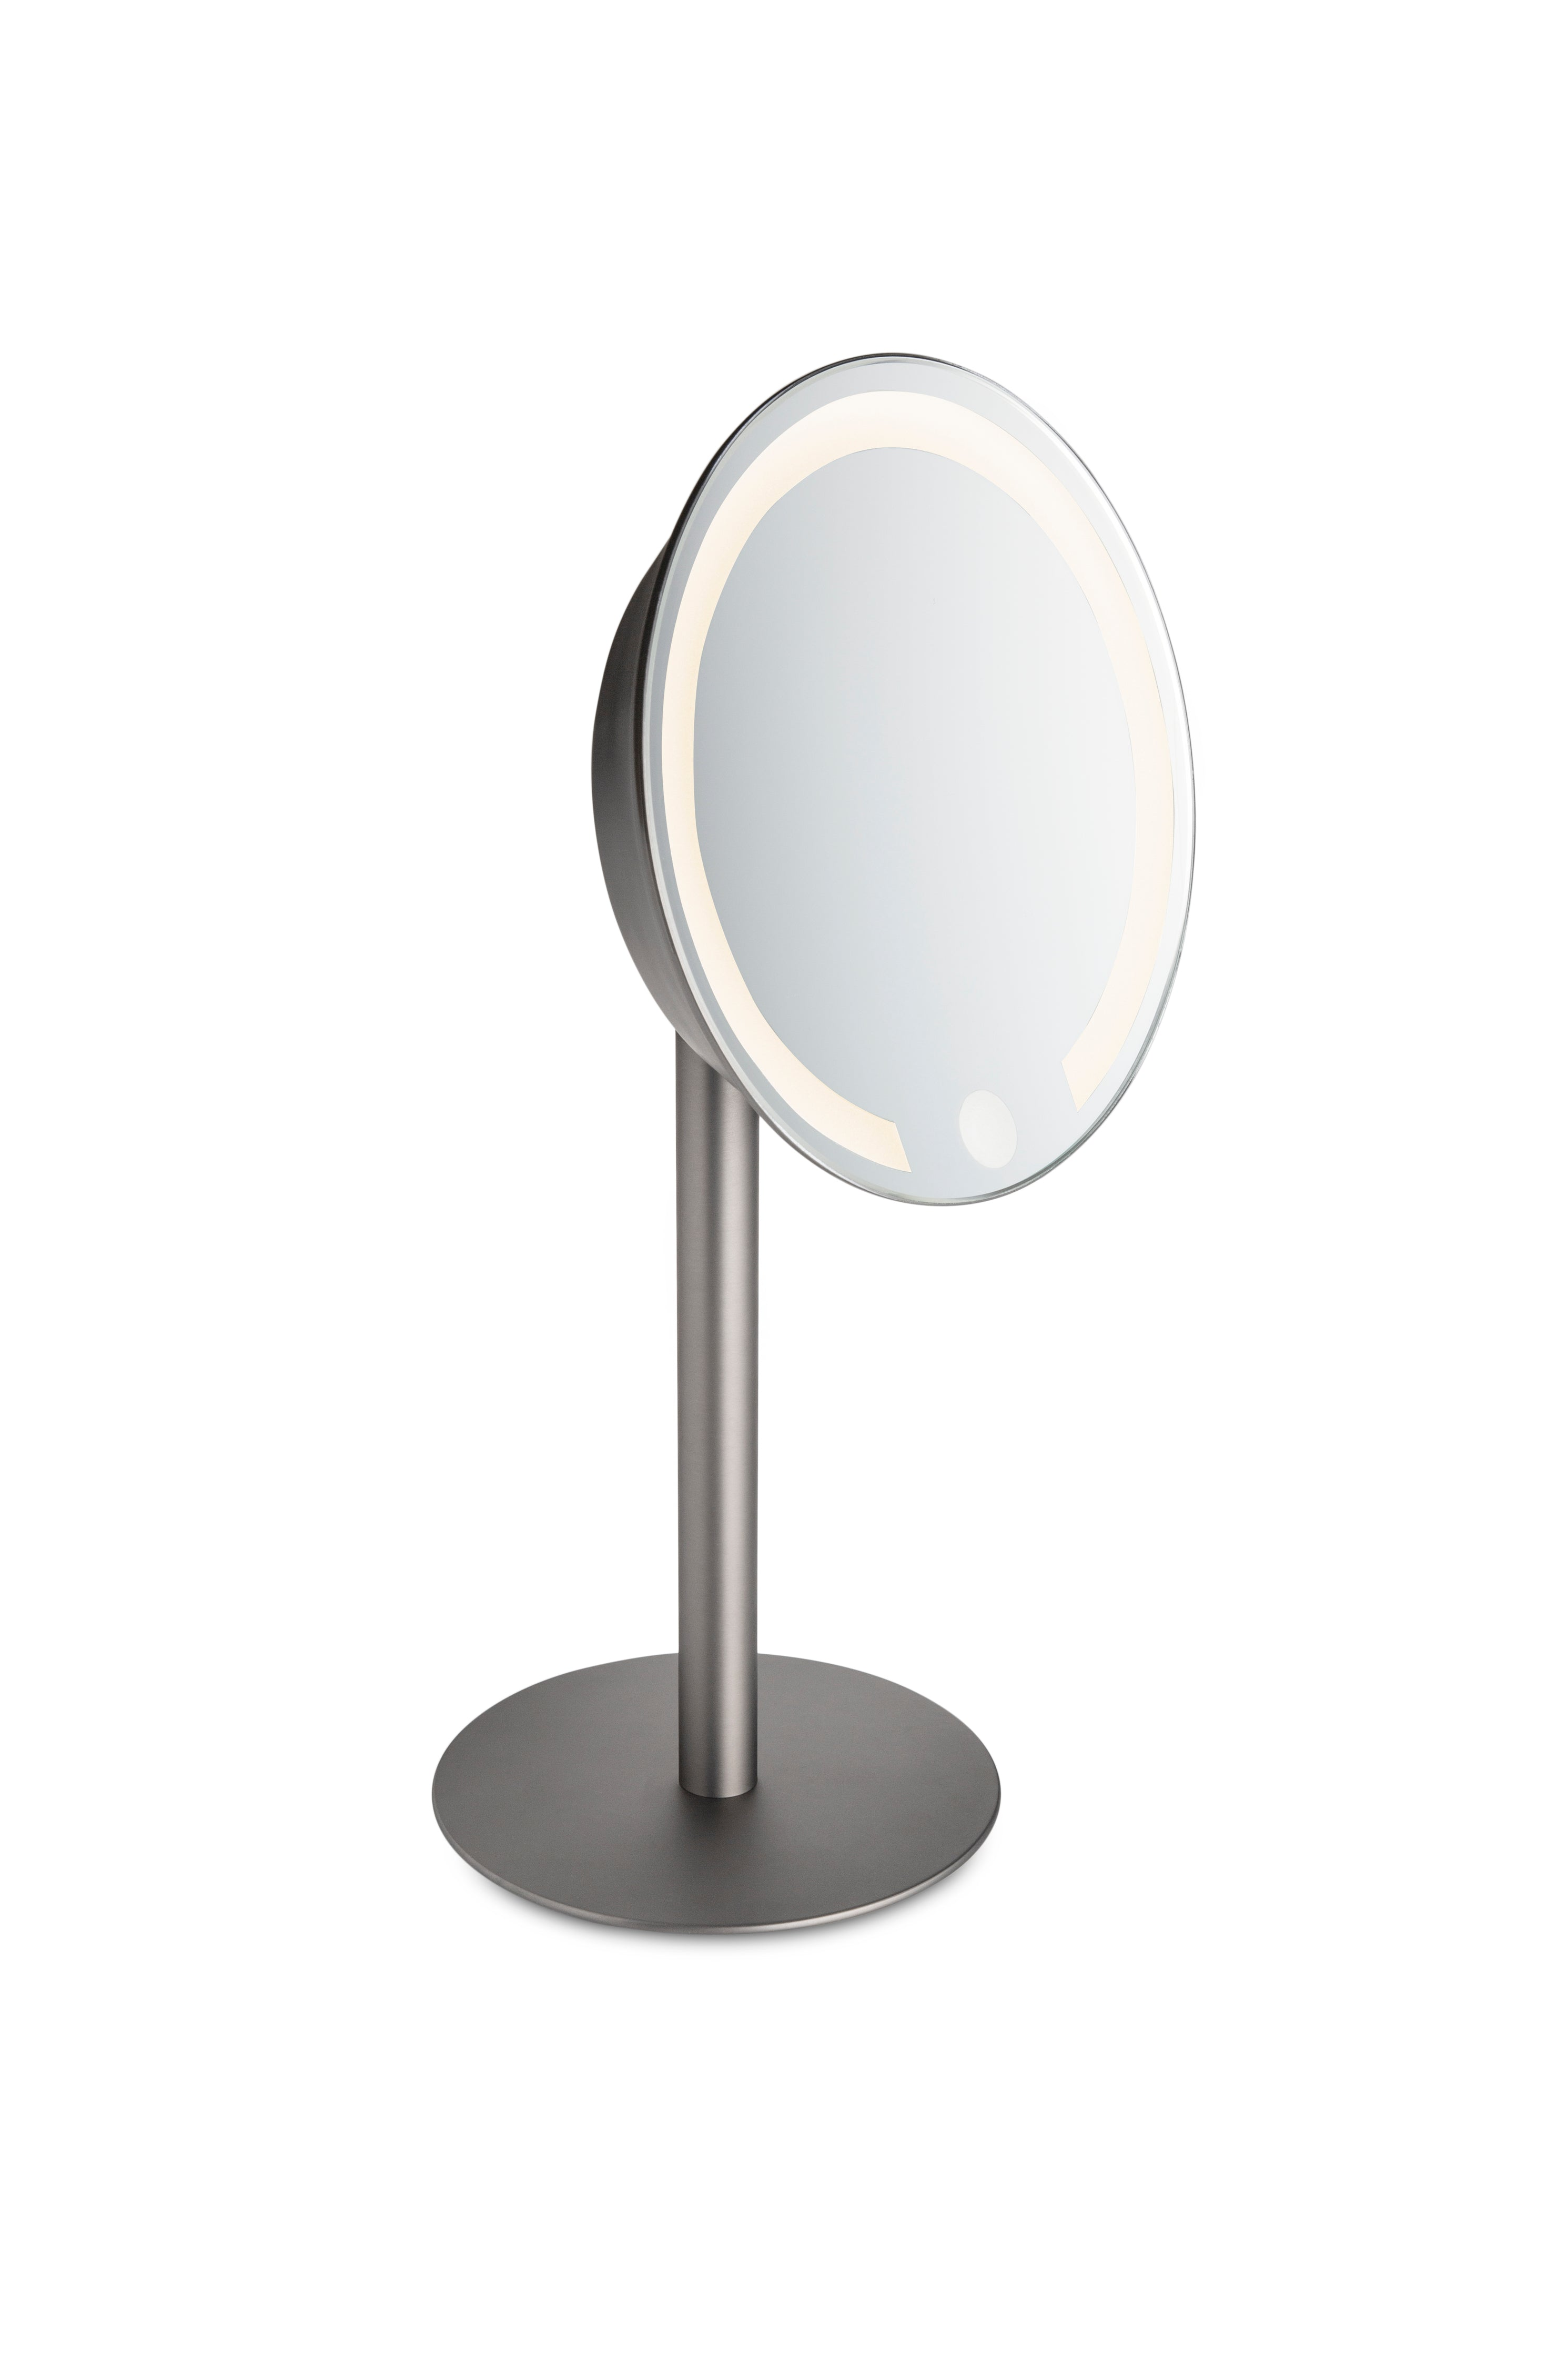 Standing Mirror with LED Technology - Alinterio